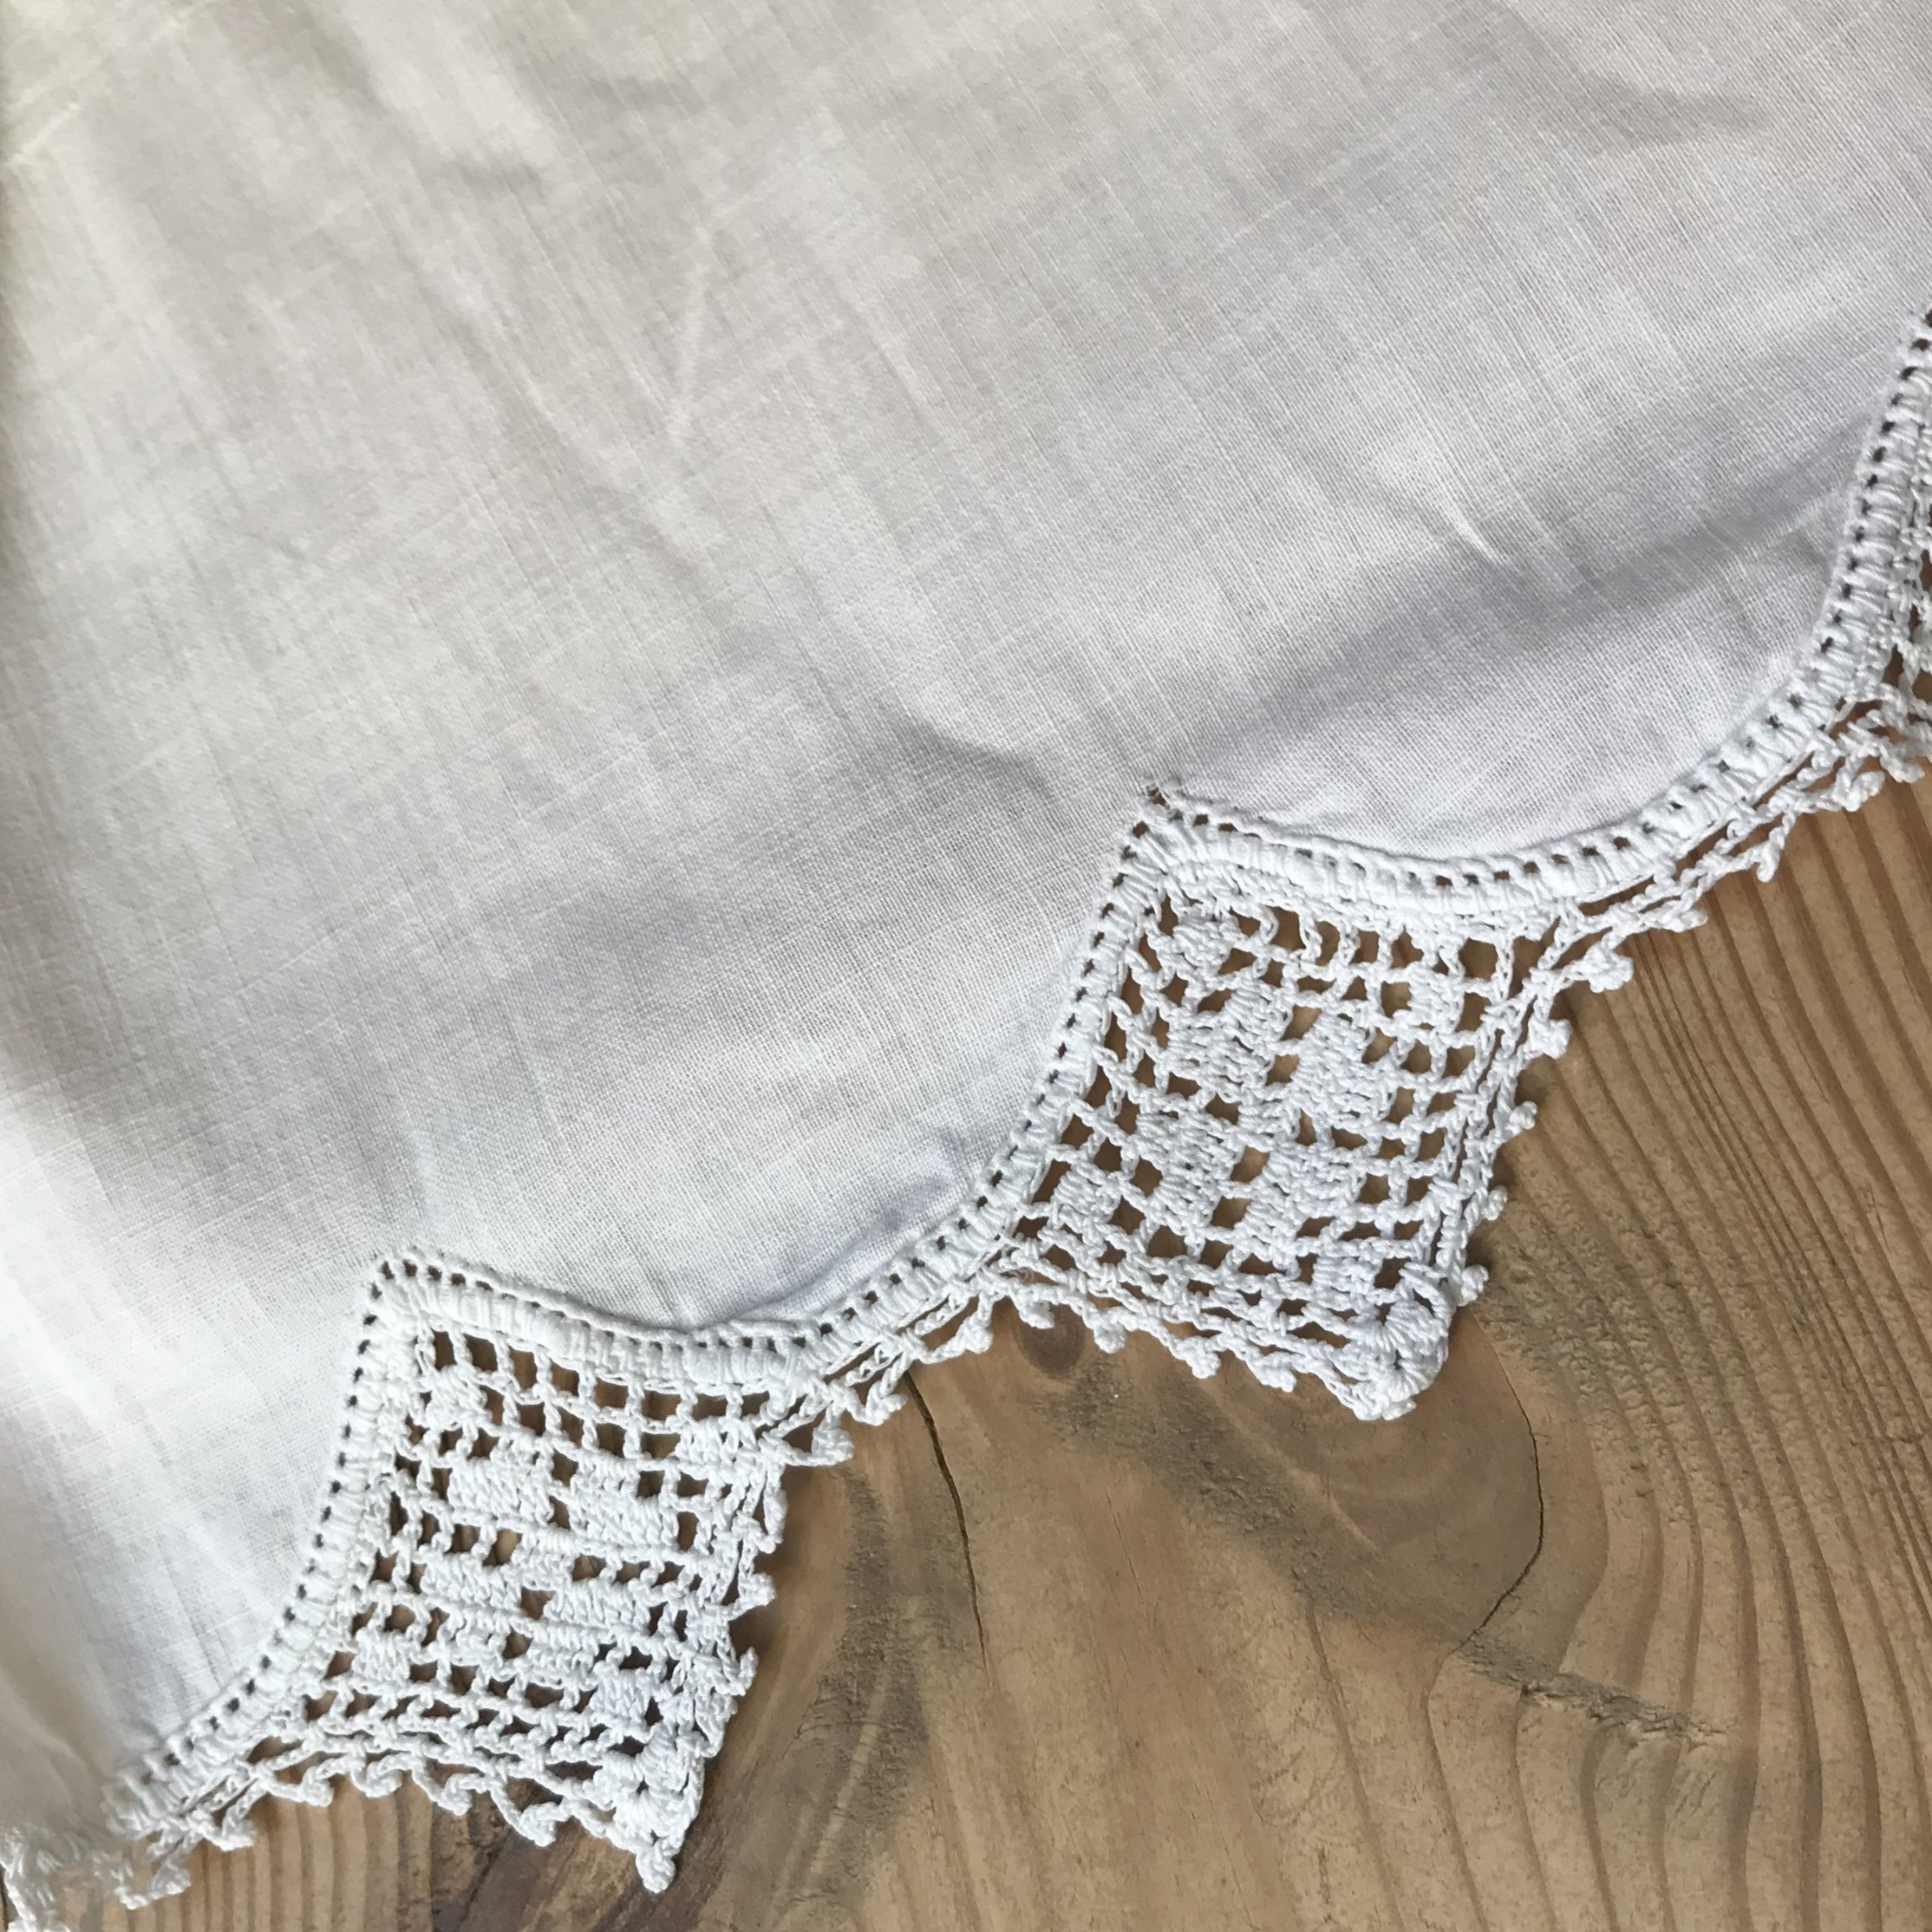 The other sheet has a scalloped edge with handmade lace. It was sheet was so yellow that I thought it was ecru until I laundered it.